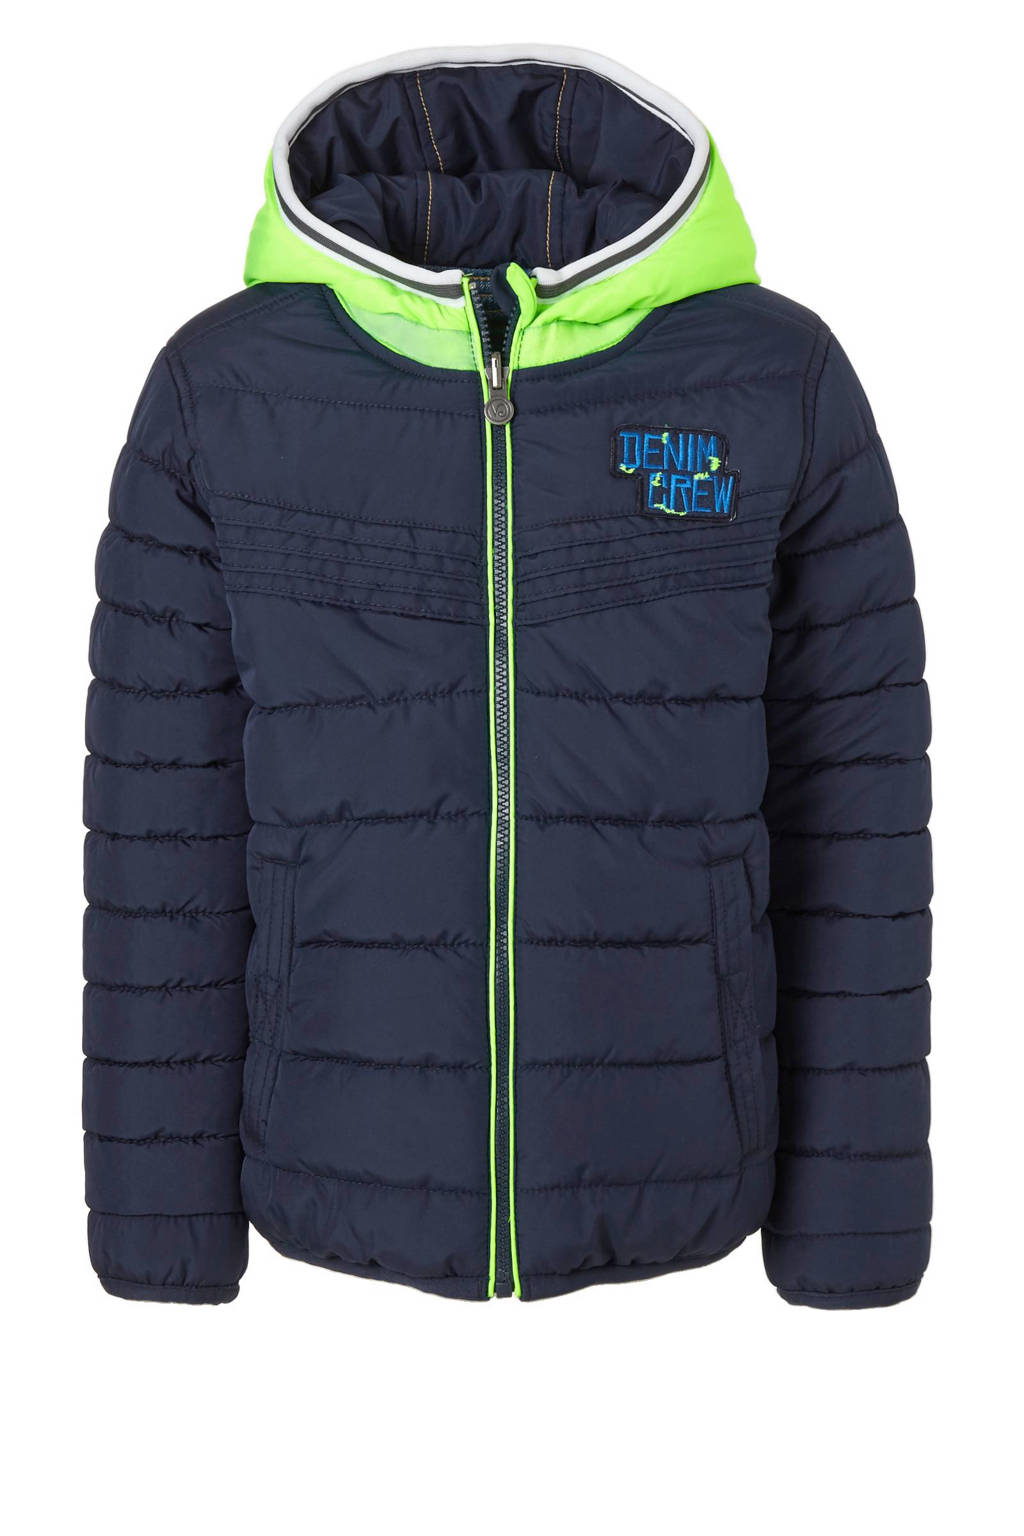 3a7a2c5391cc3d Vingino reversible winterjas, Donkerblauw/blauw/groen